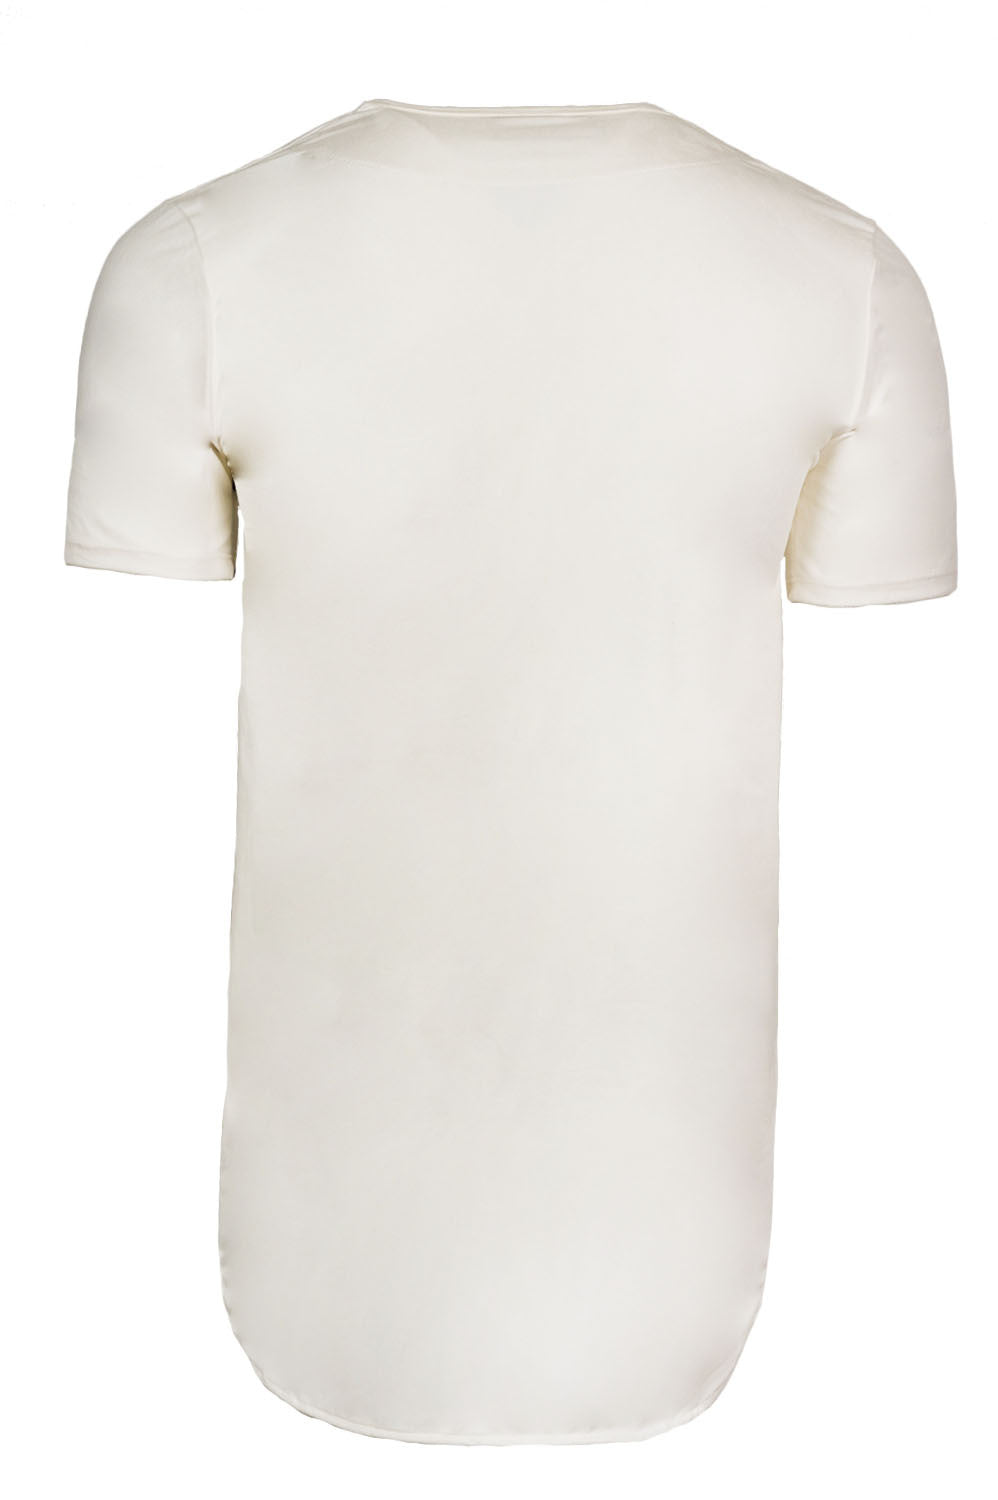 Elongated Stretch Suede White Tunic